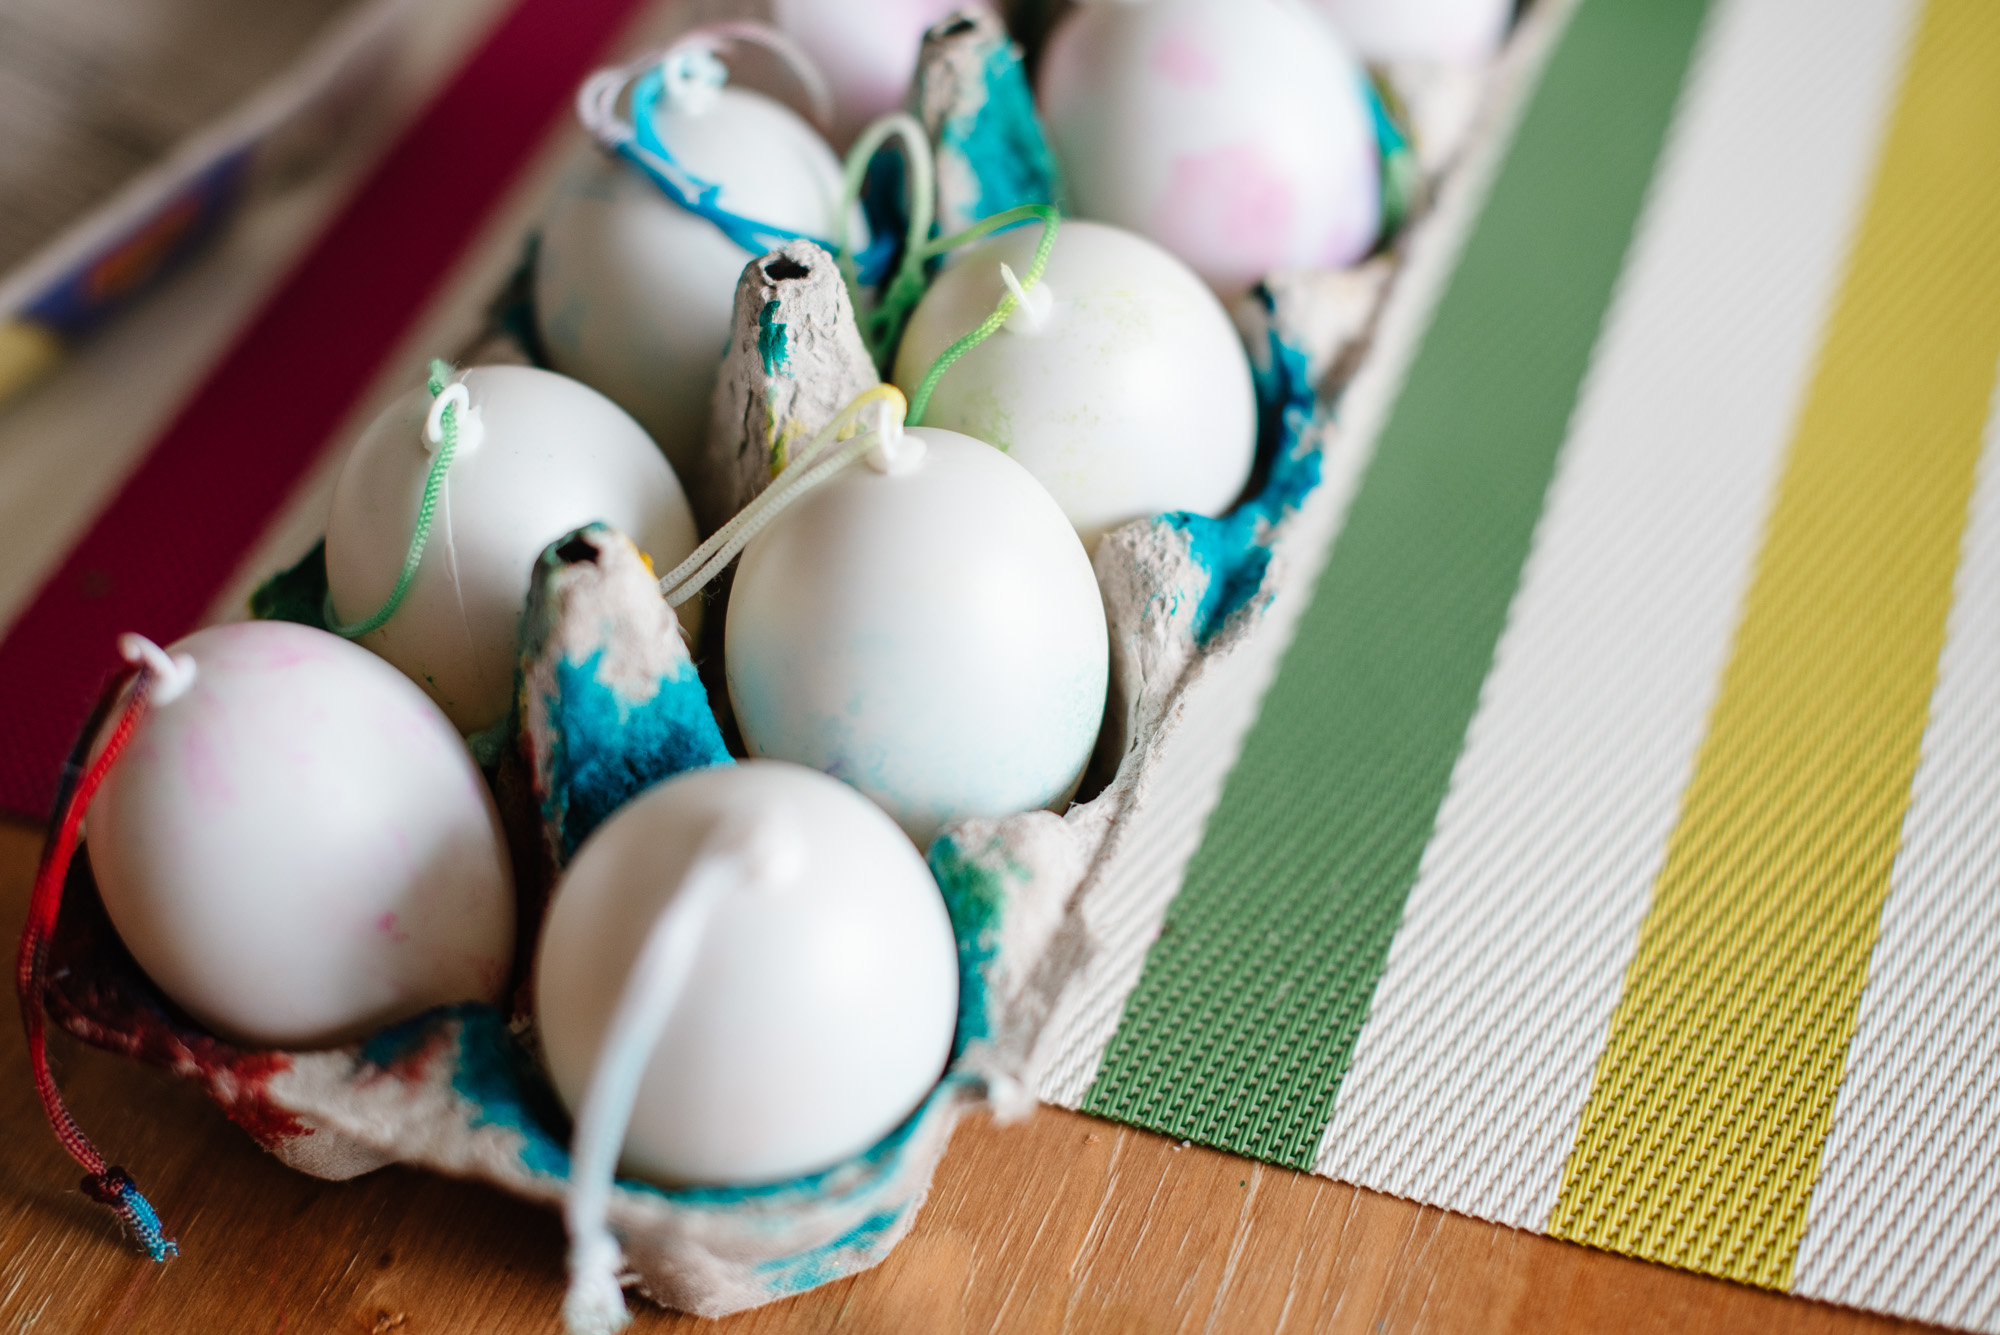 sara-wilde-collective-tie-dye-easter-eggs-food-colouring-2.jpg